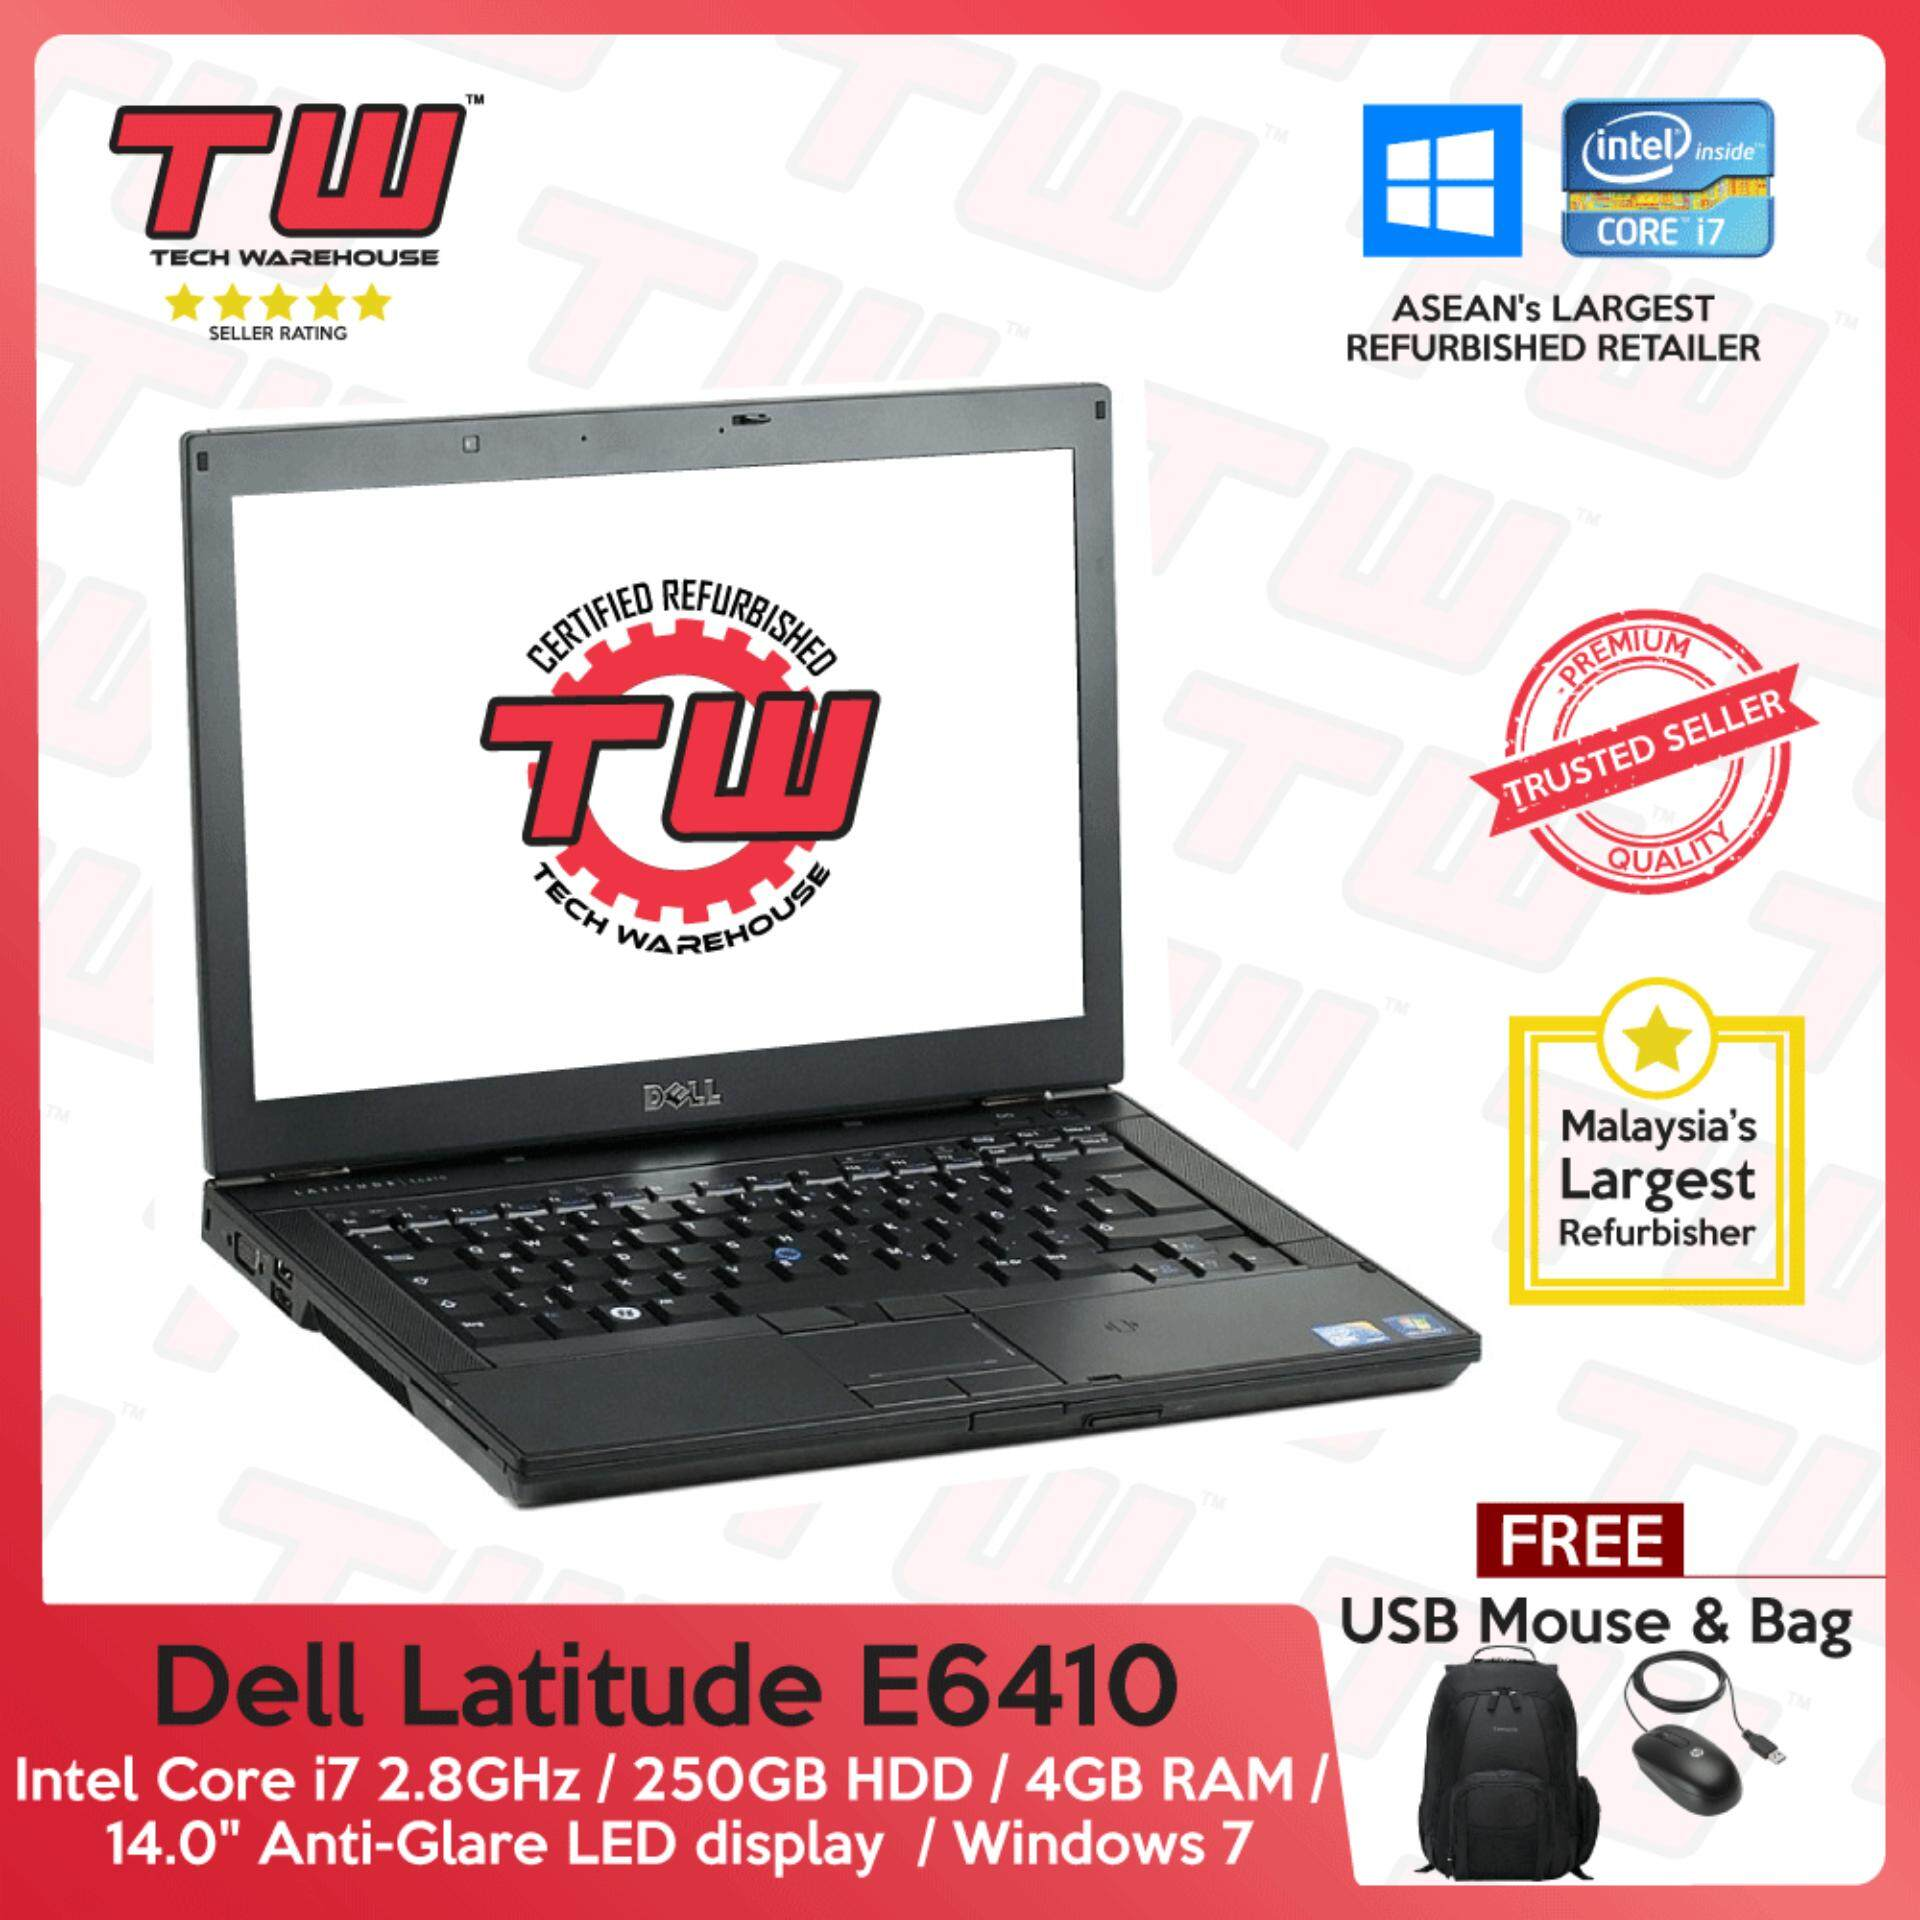 Dell Latitude E6410 Core i7 2.8GHz / 4GB RAM / 250GB HDD / Windows 7 Laptop / 3 Month Warranty (Factory Refurbished) Malaysia